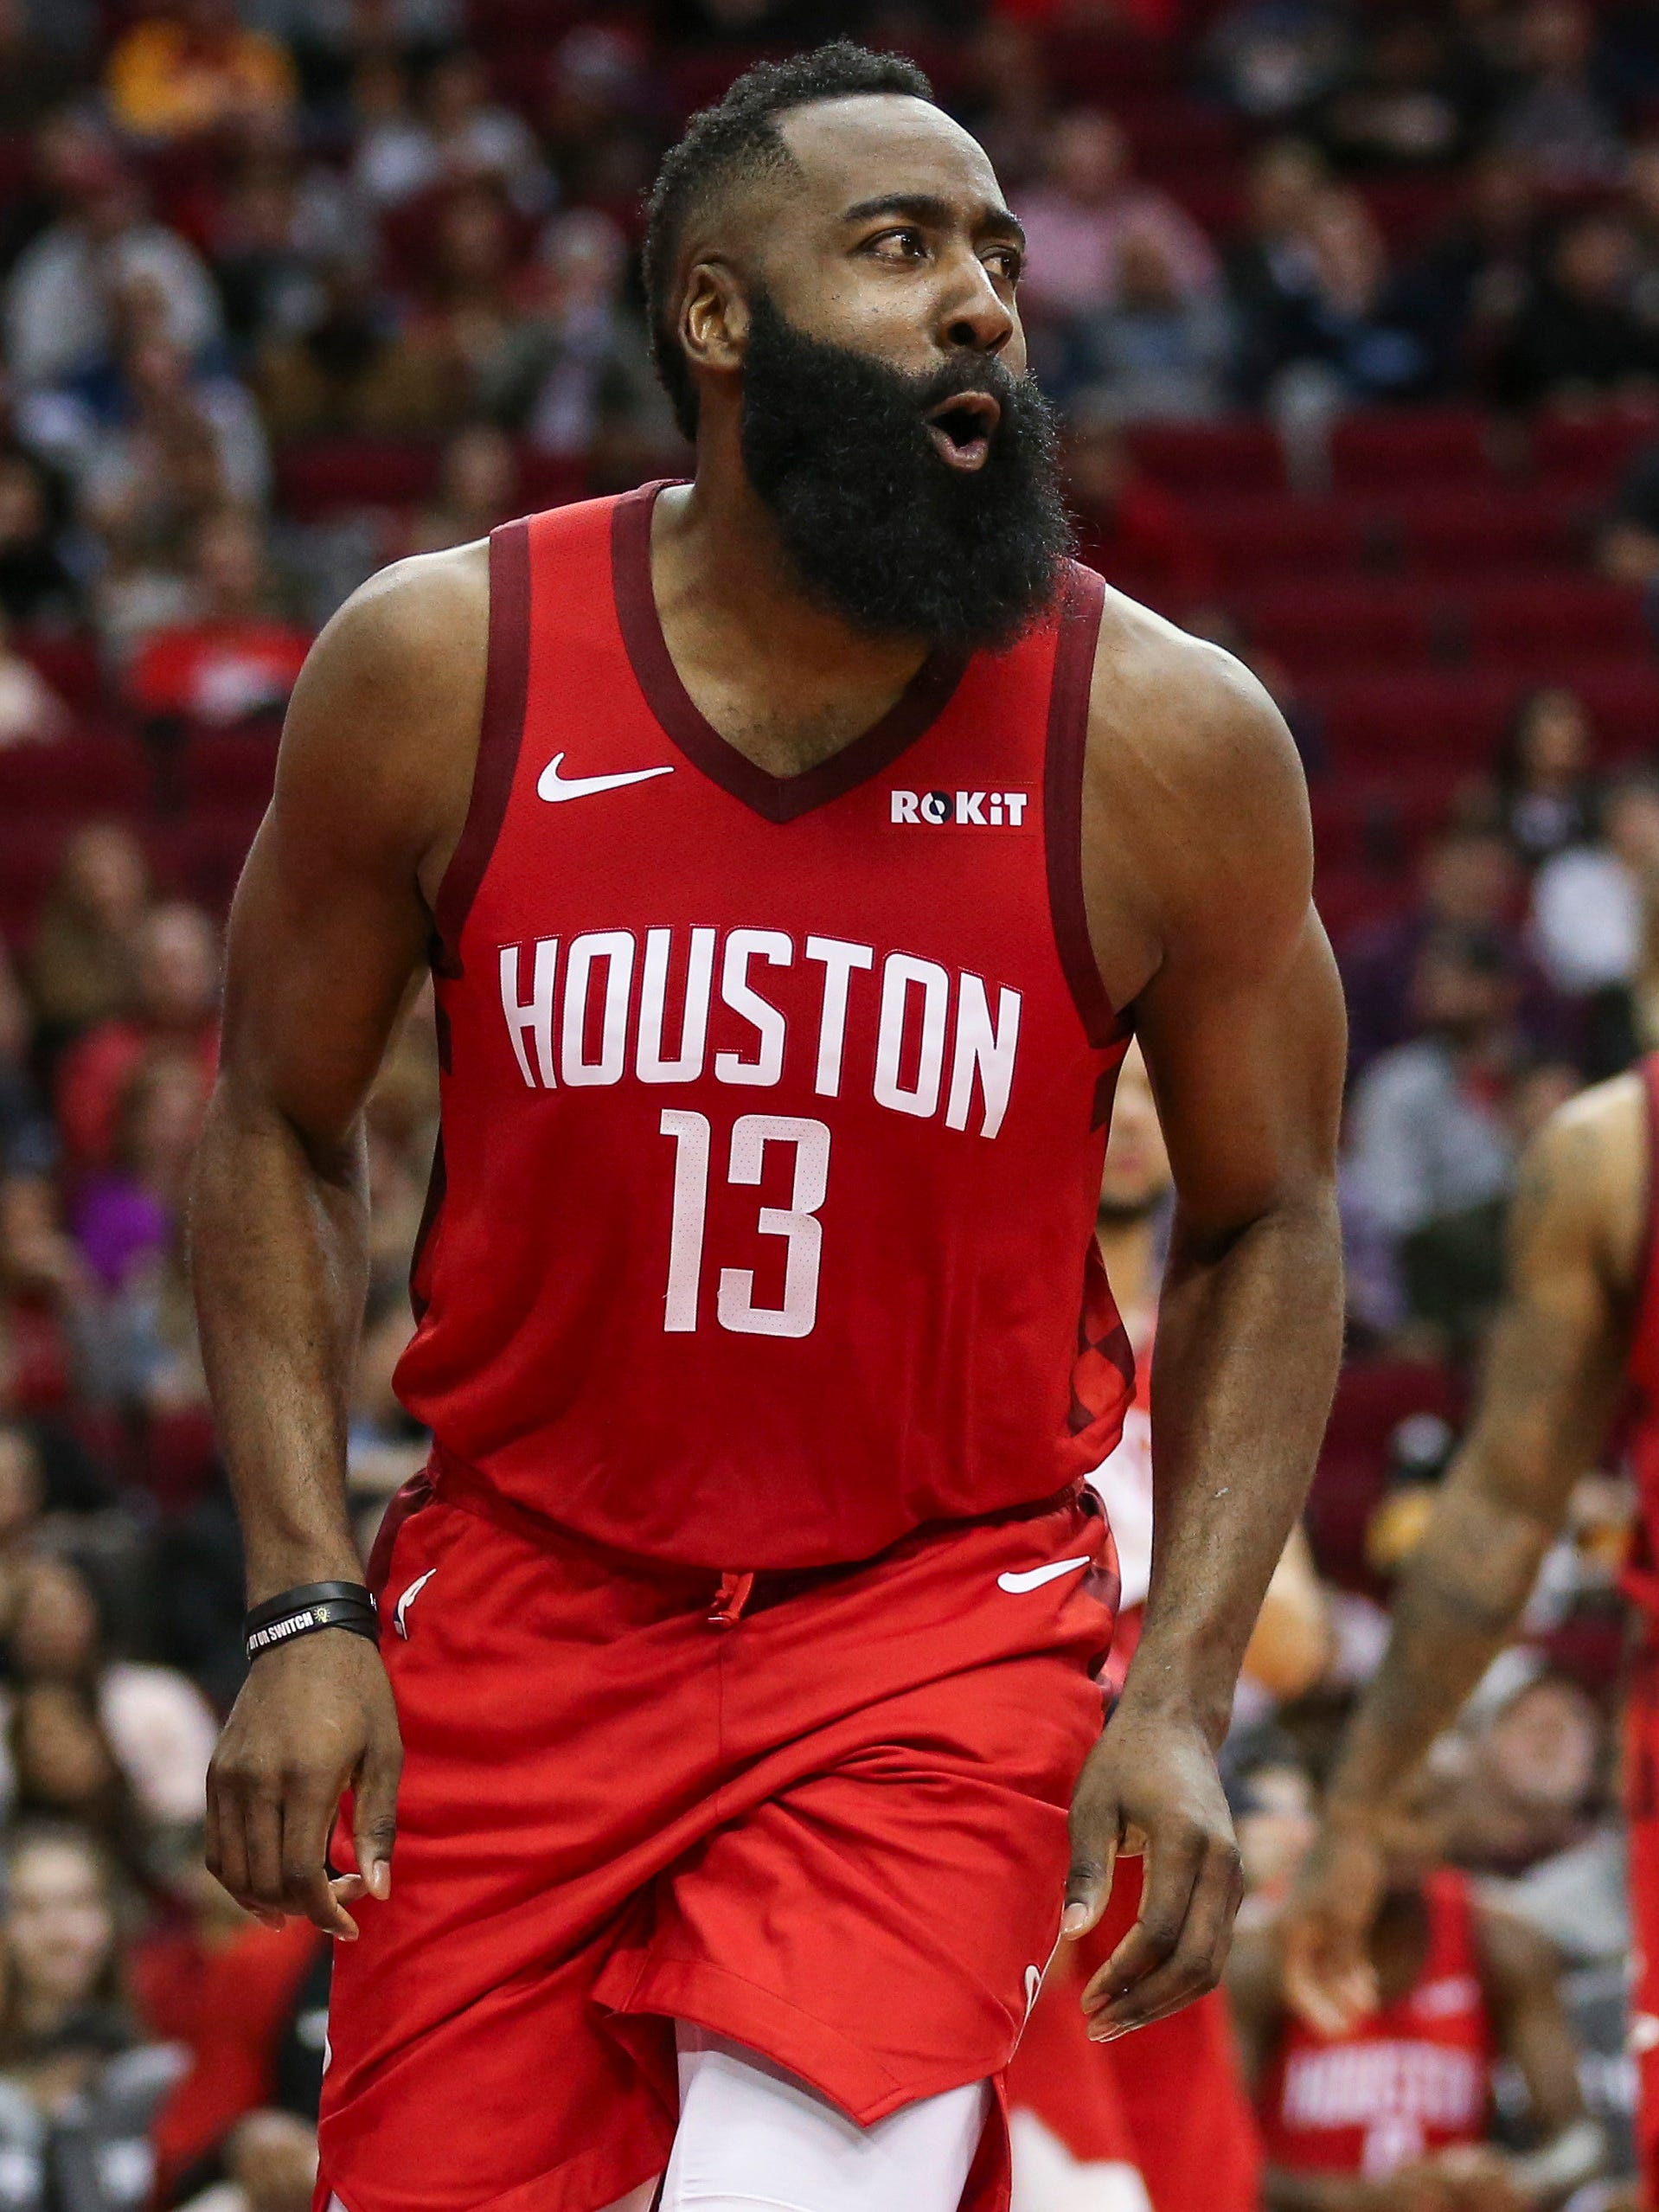 James Harden is averaging 42.3 points during his streak of 30-point games.